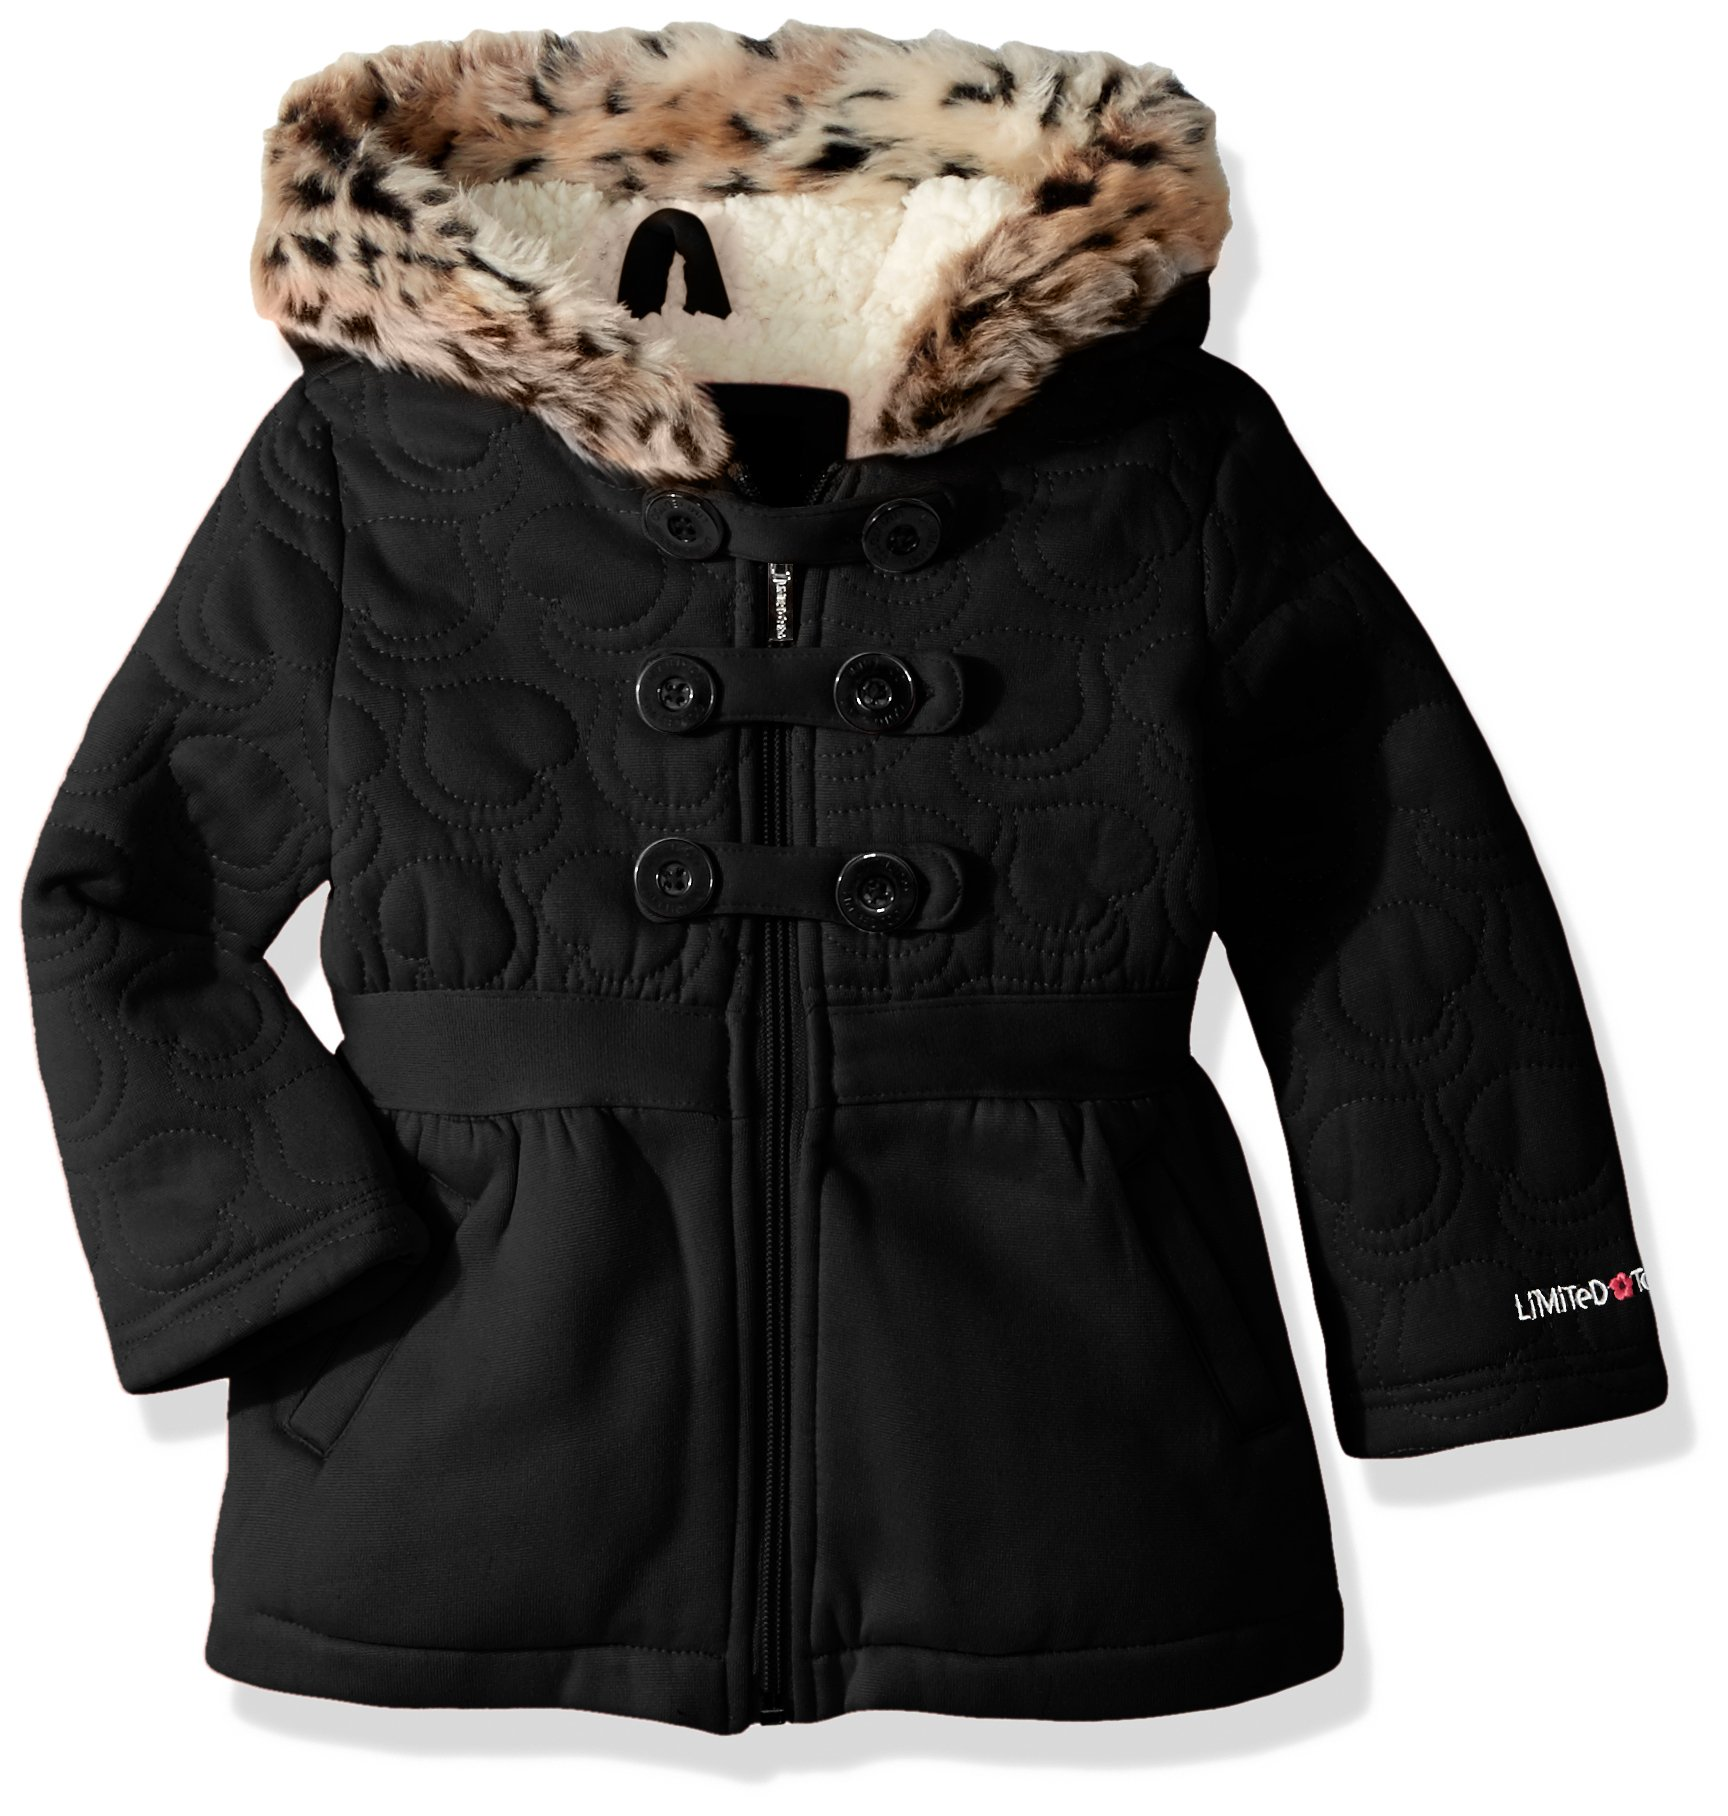 Limited Too Baby Girls Too Inf Heart Quilt Military Fleece JKT, Black, 12M